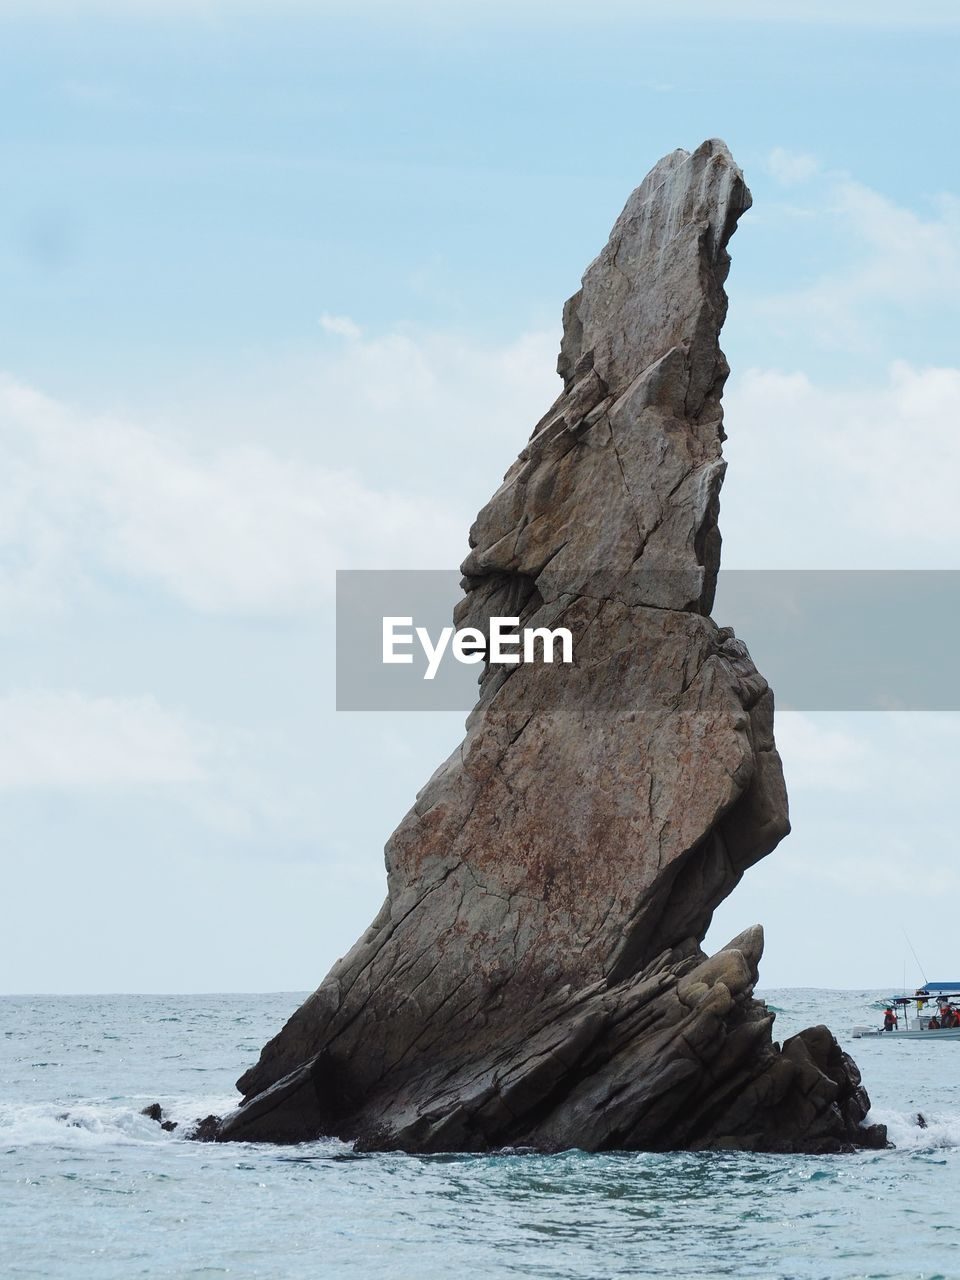 SCENIC VIEW OF ROCK FORMATION ON SEA AGAINST SKY